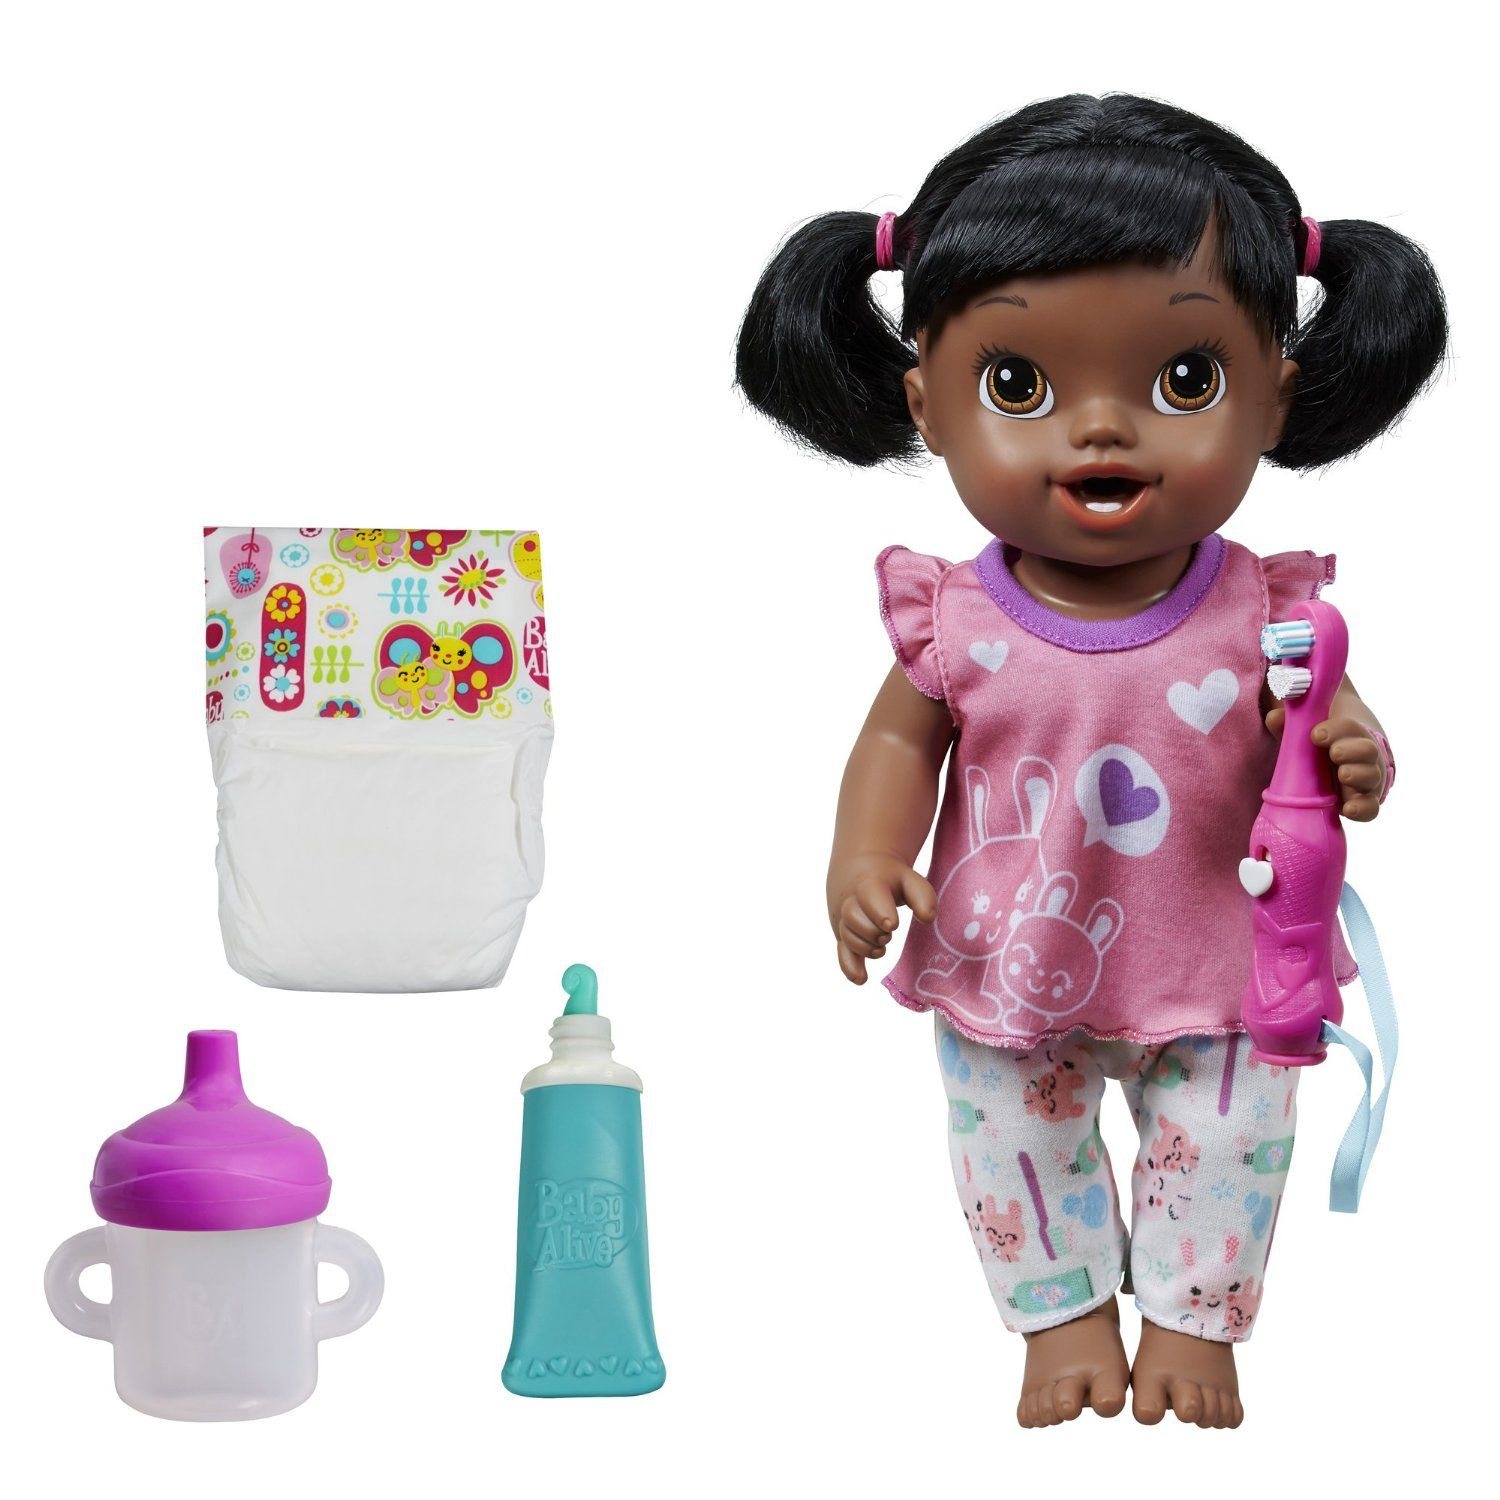 Amazon Com Baby Alive Brushy Brushy Baby Doll African American Toys Games Baby Alive Fake Baby Dolls Baby Alive Dolls